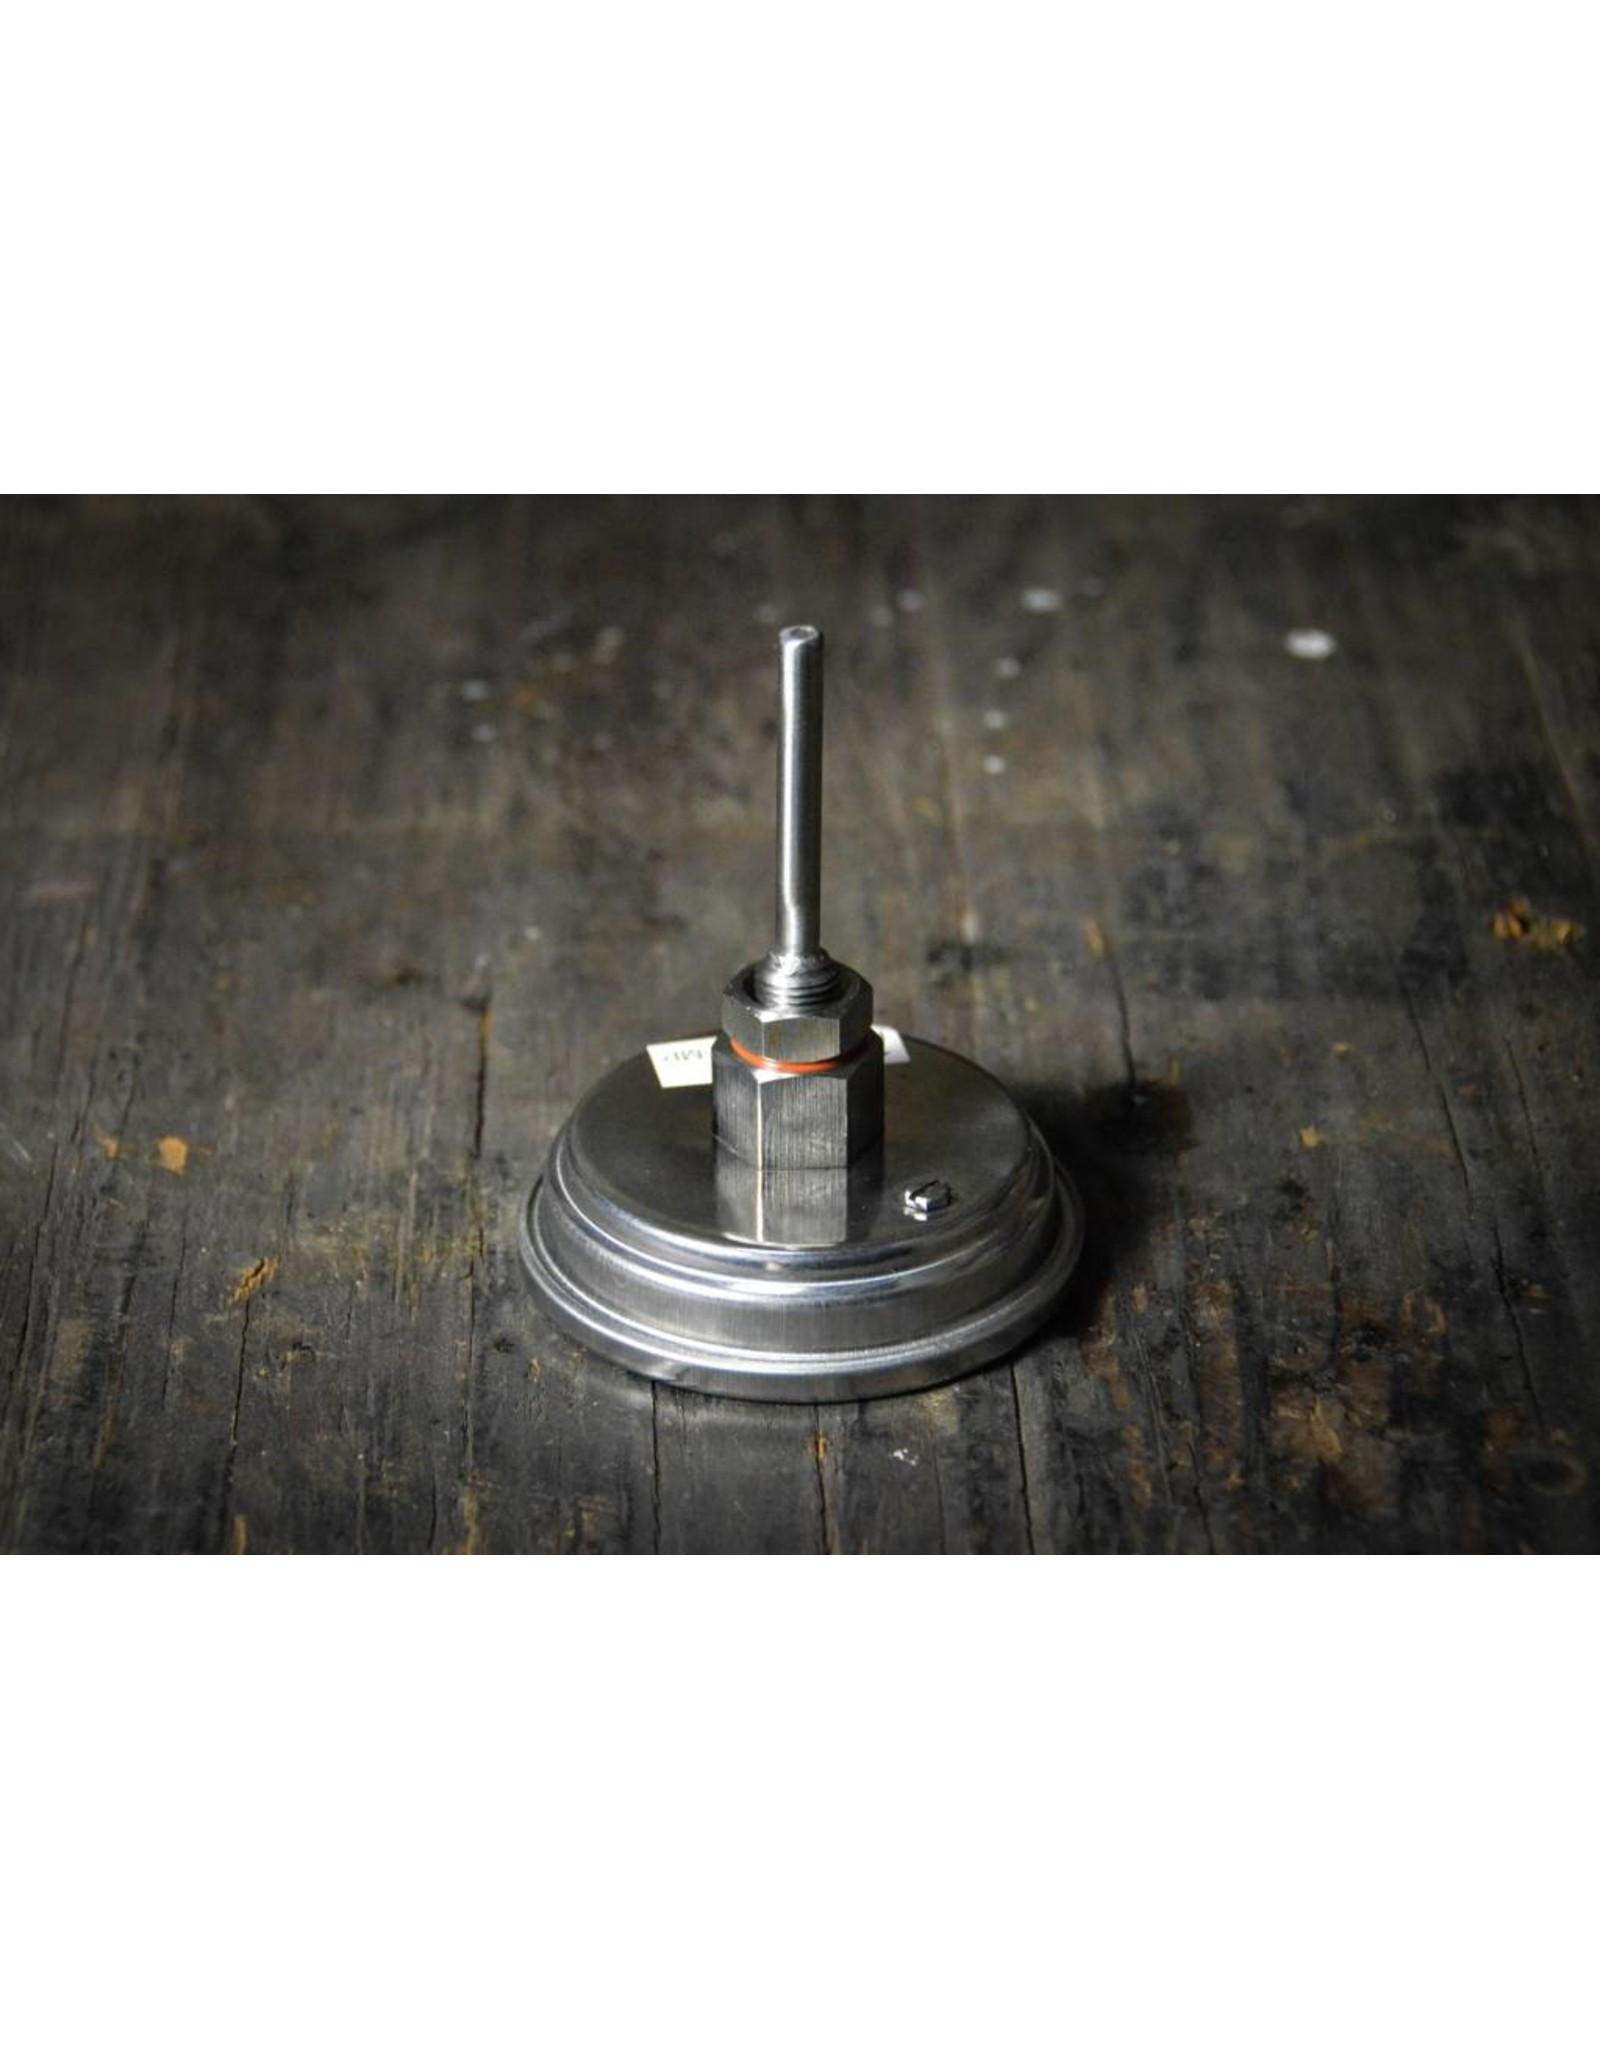 ANVIL THERMOMETER WELDLESS